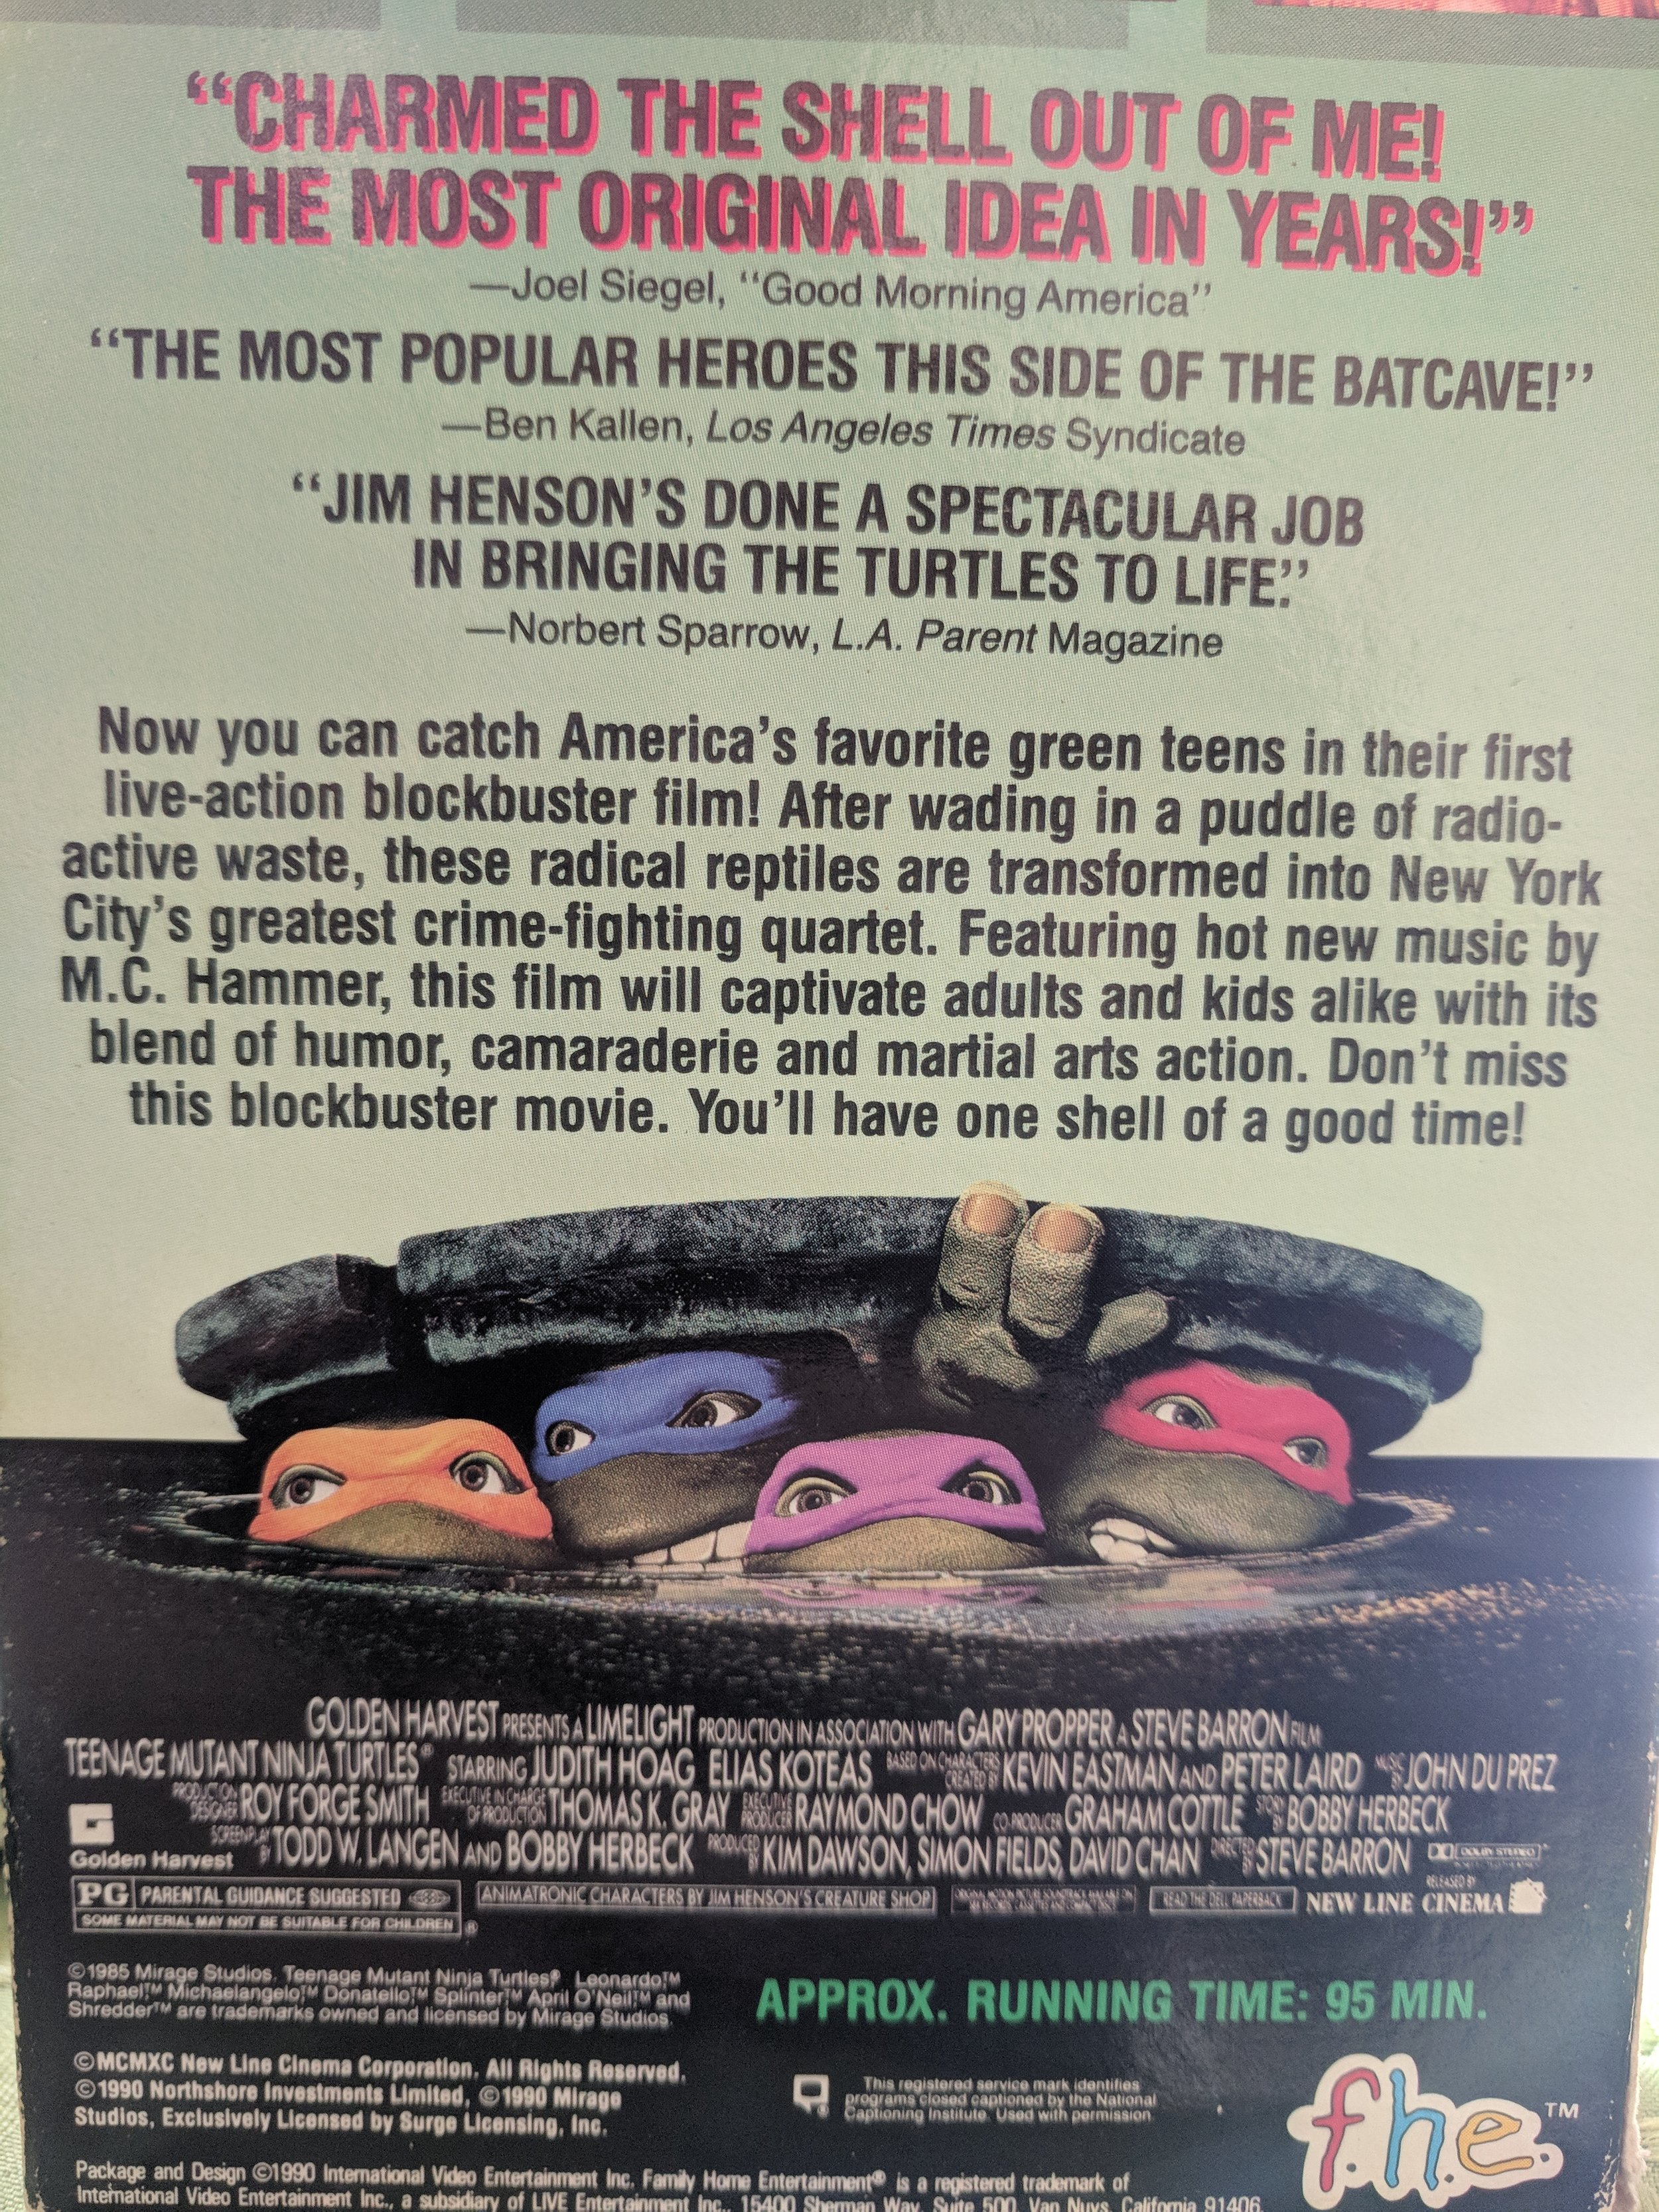 The back of the VHS jacket. That's right, I still own one and had it ready!